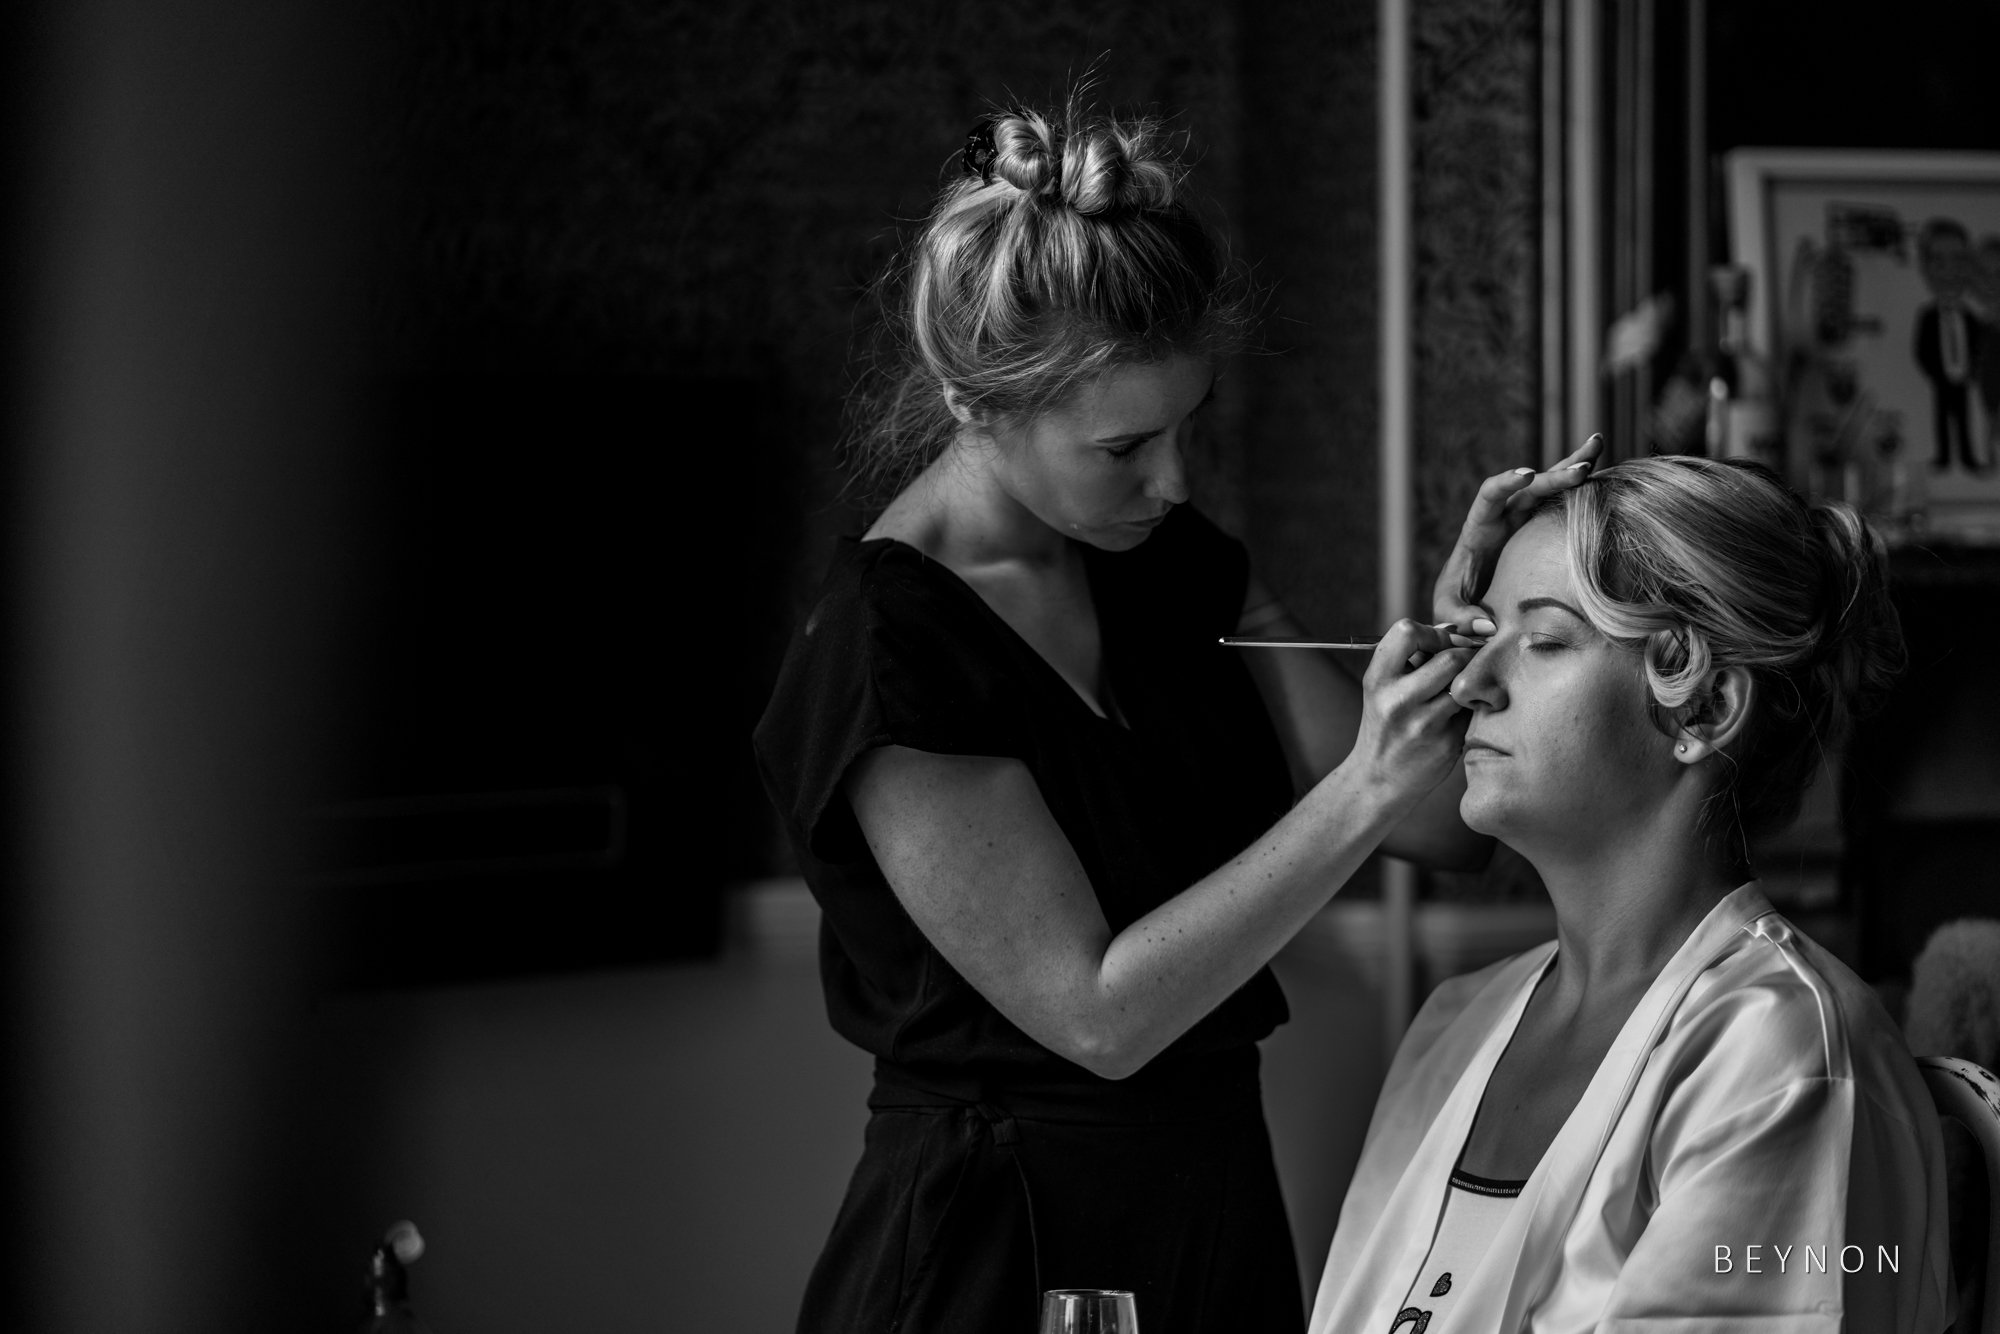 The bride has make-up applied